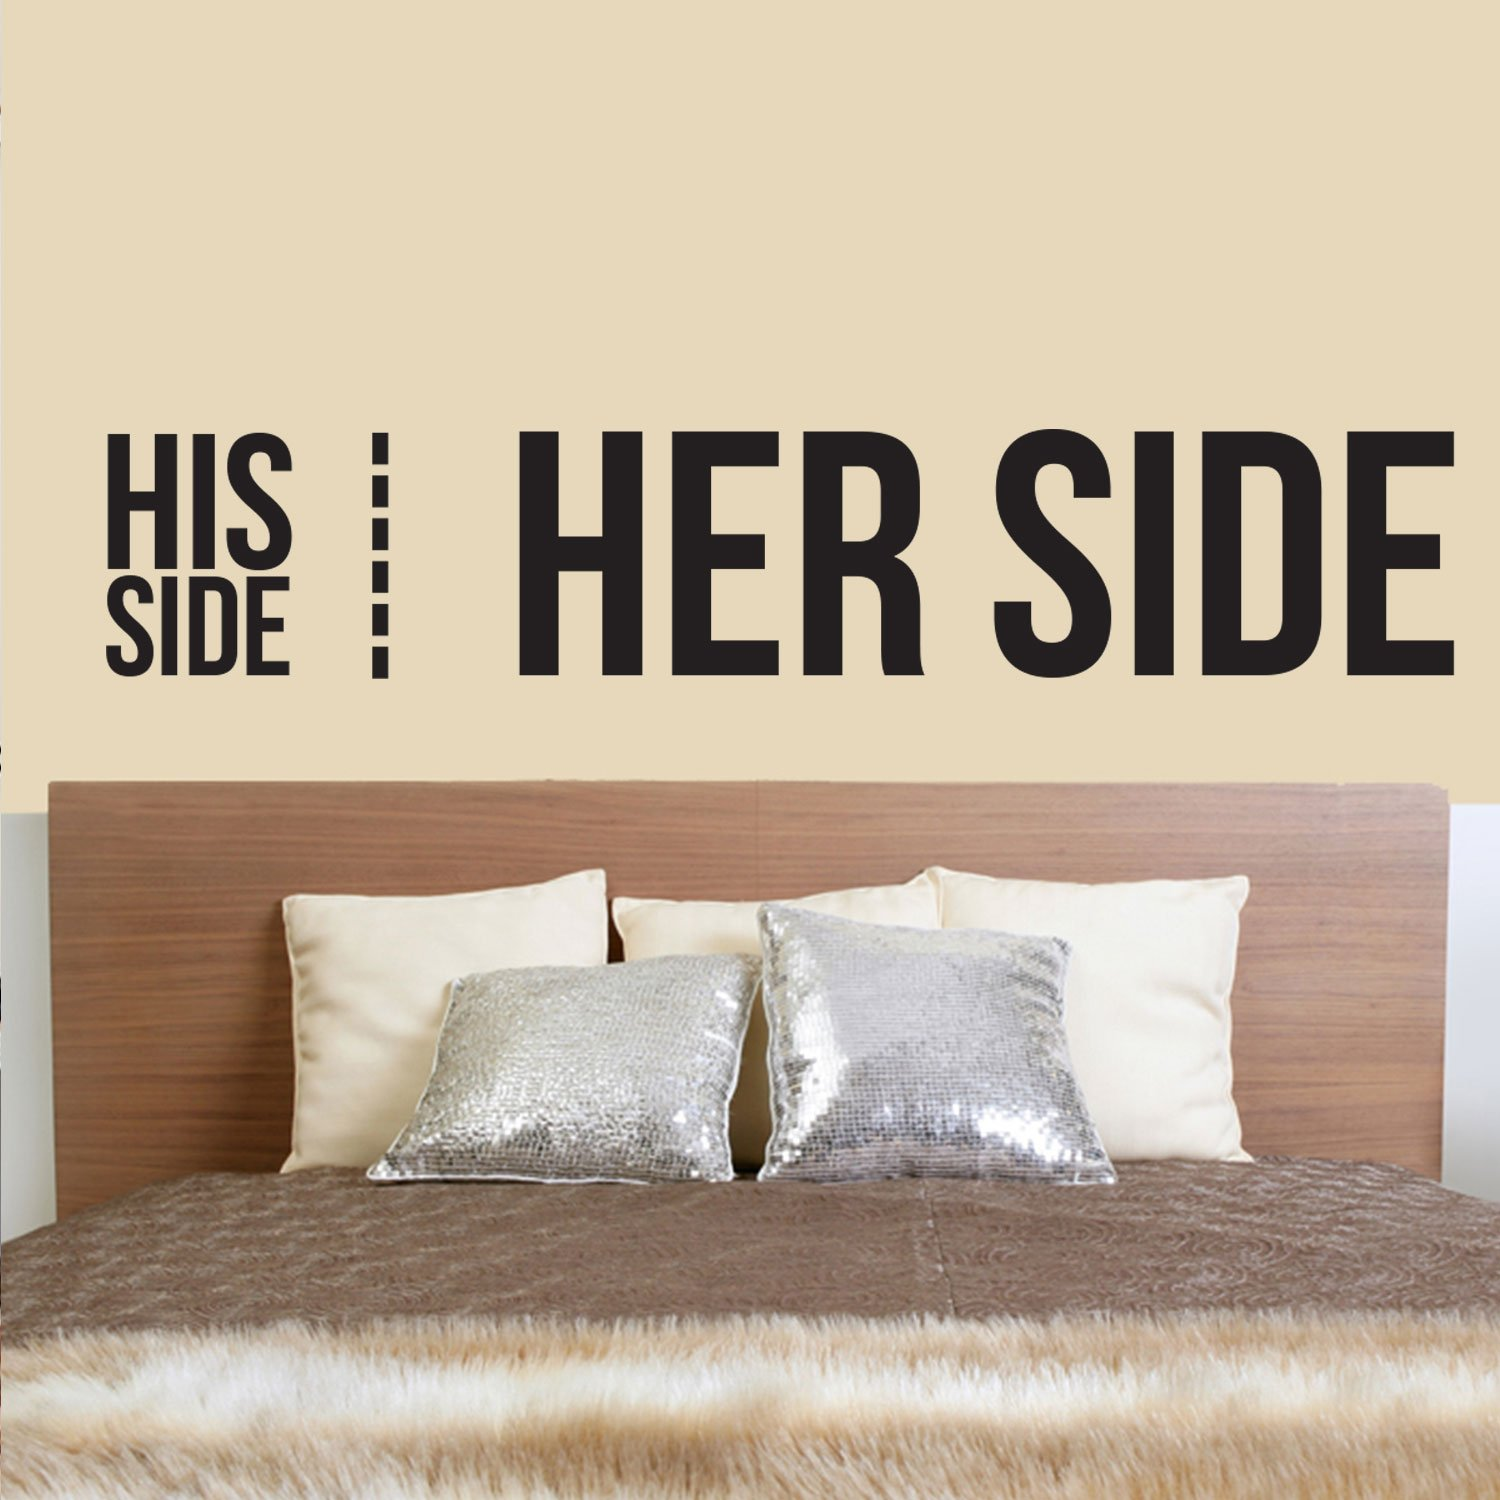 and Mrs Modern Indoor Apartment Mr Couples Family Funny Humor Love Quote 10 x 50 Vinyl Wall Art Decal 10 x 50, Black Witty Husband Wife Home Bedroom Decor His Side Her Side